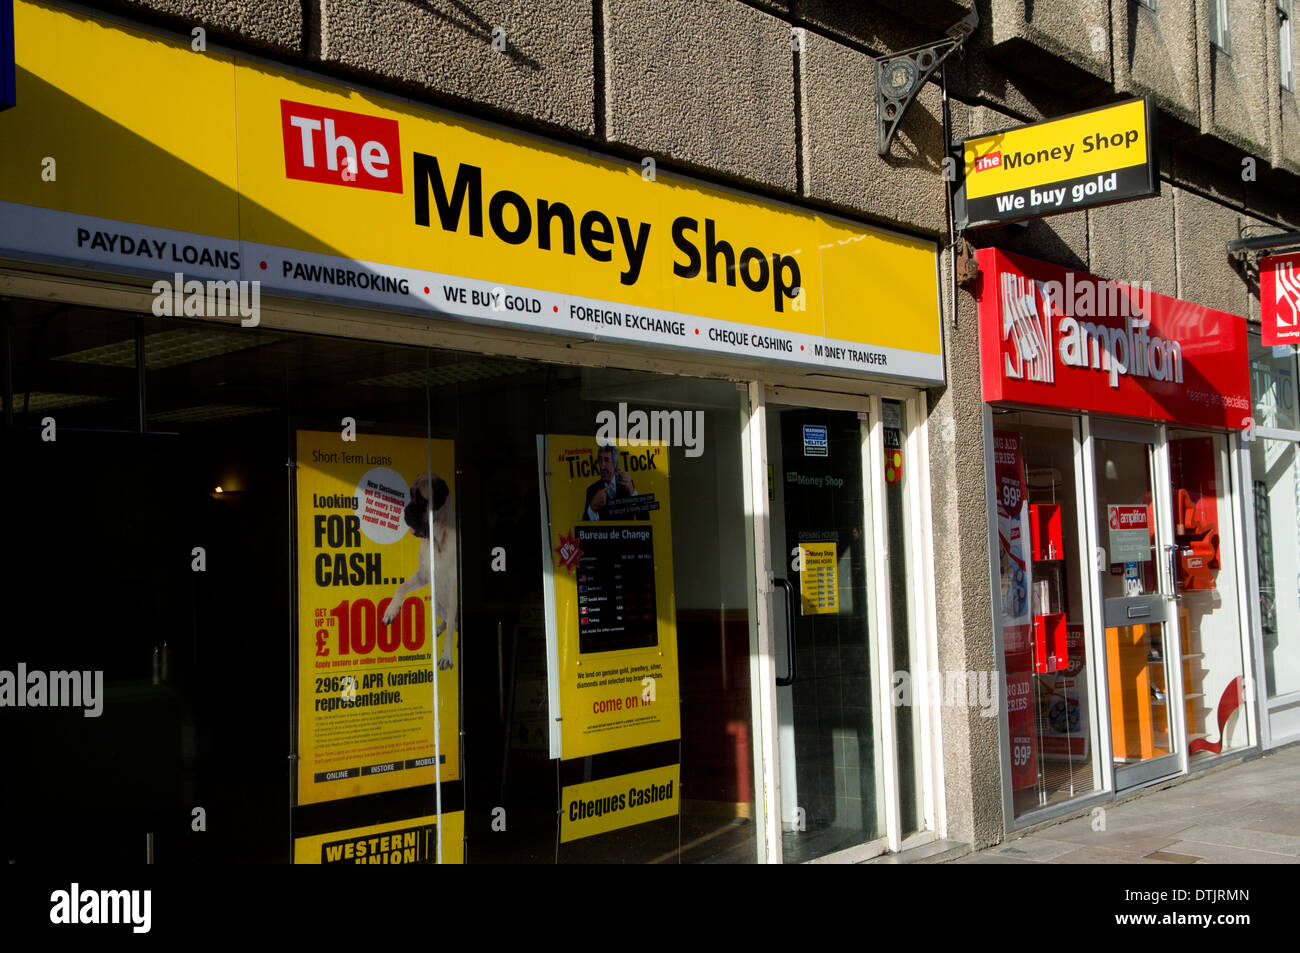 Another name for payday loans image 2